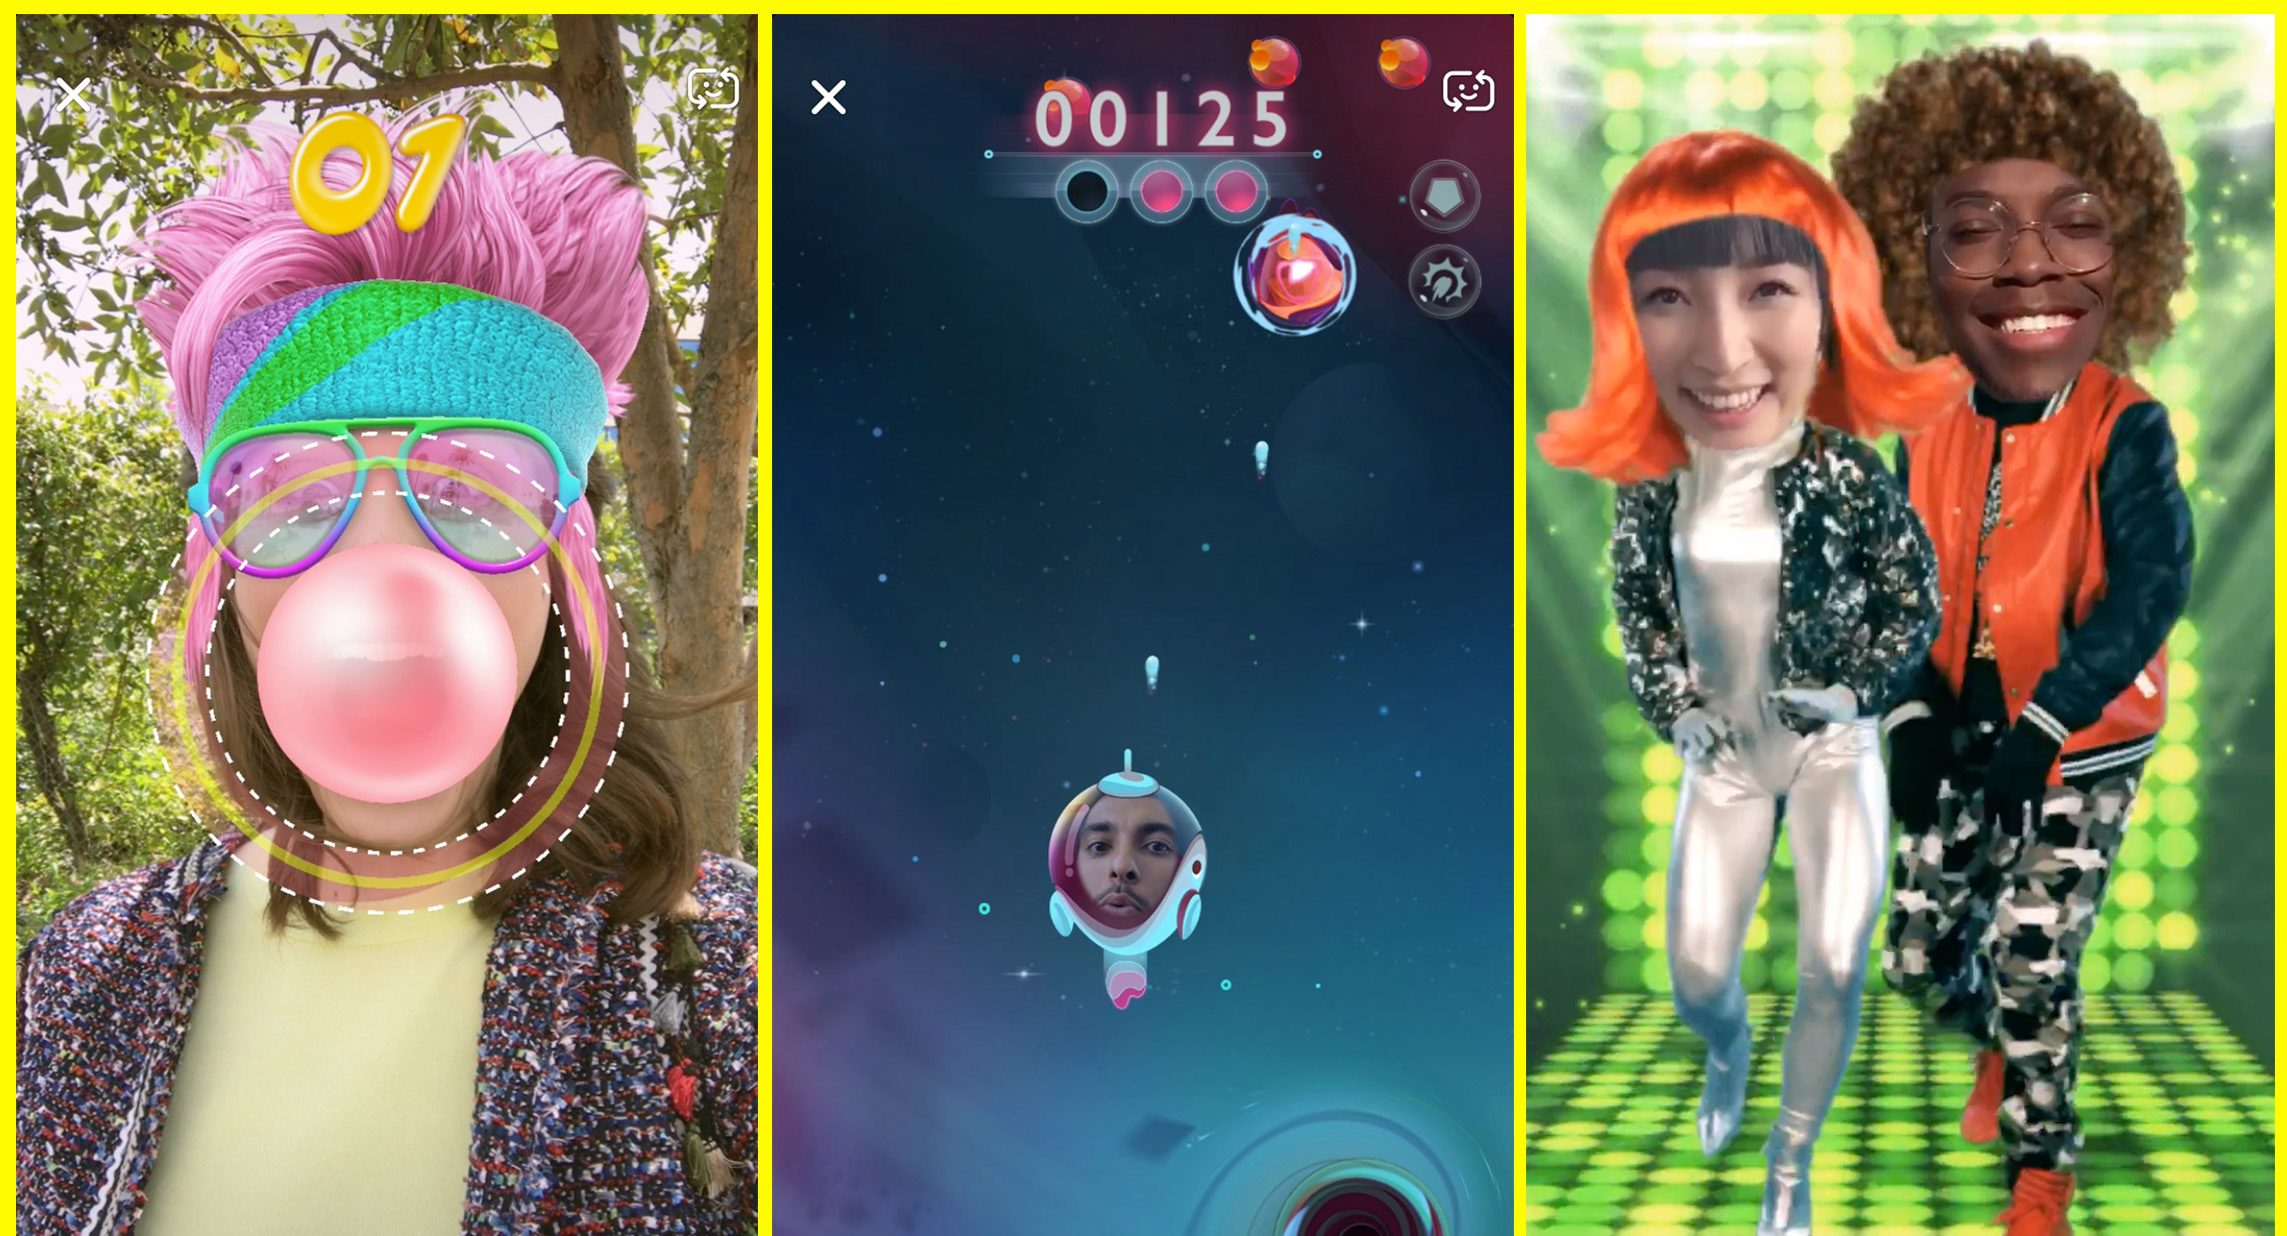 A new way to play fun AR games with your friends